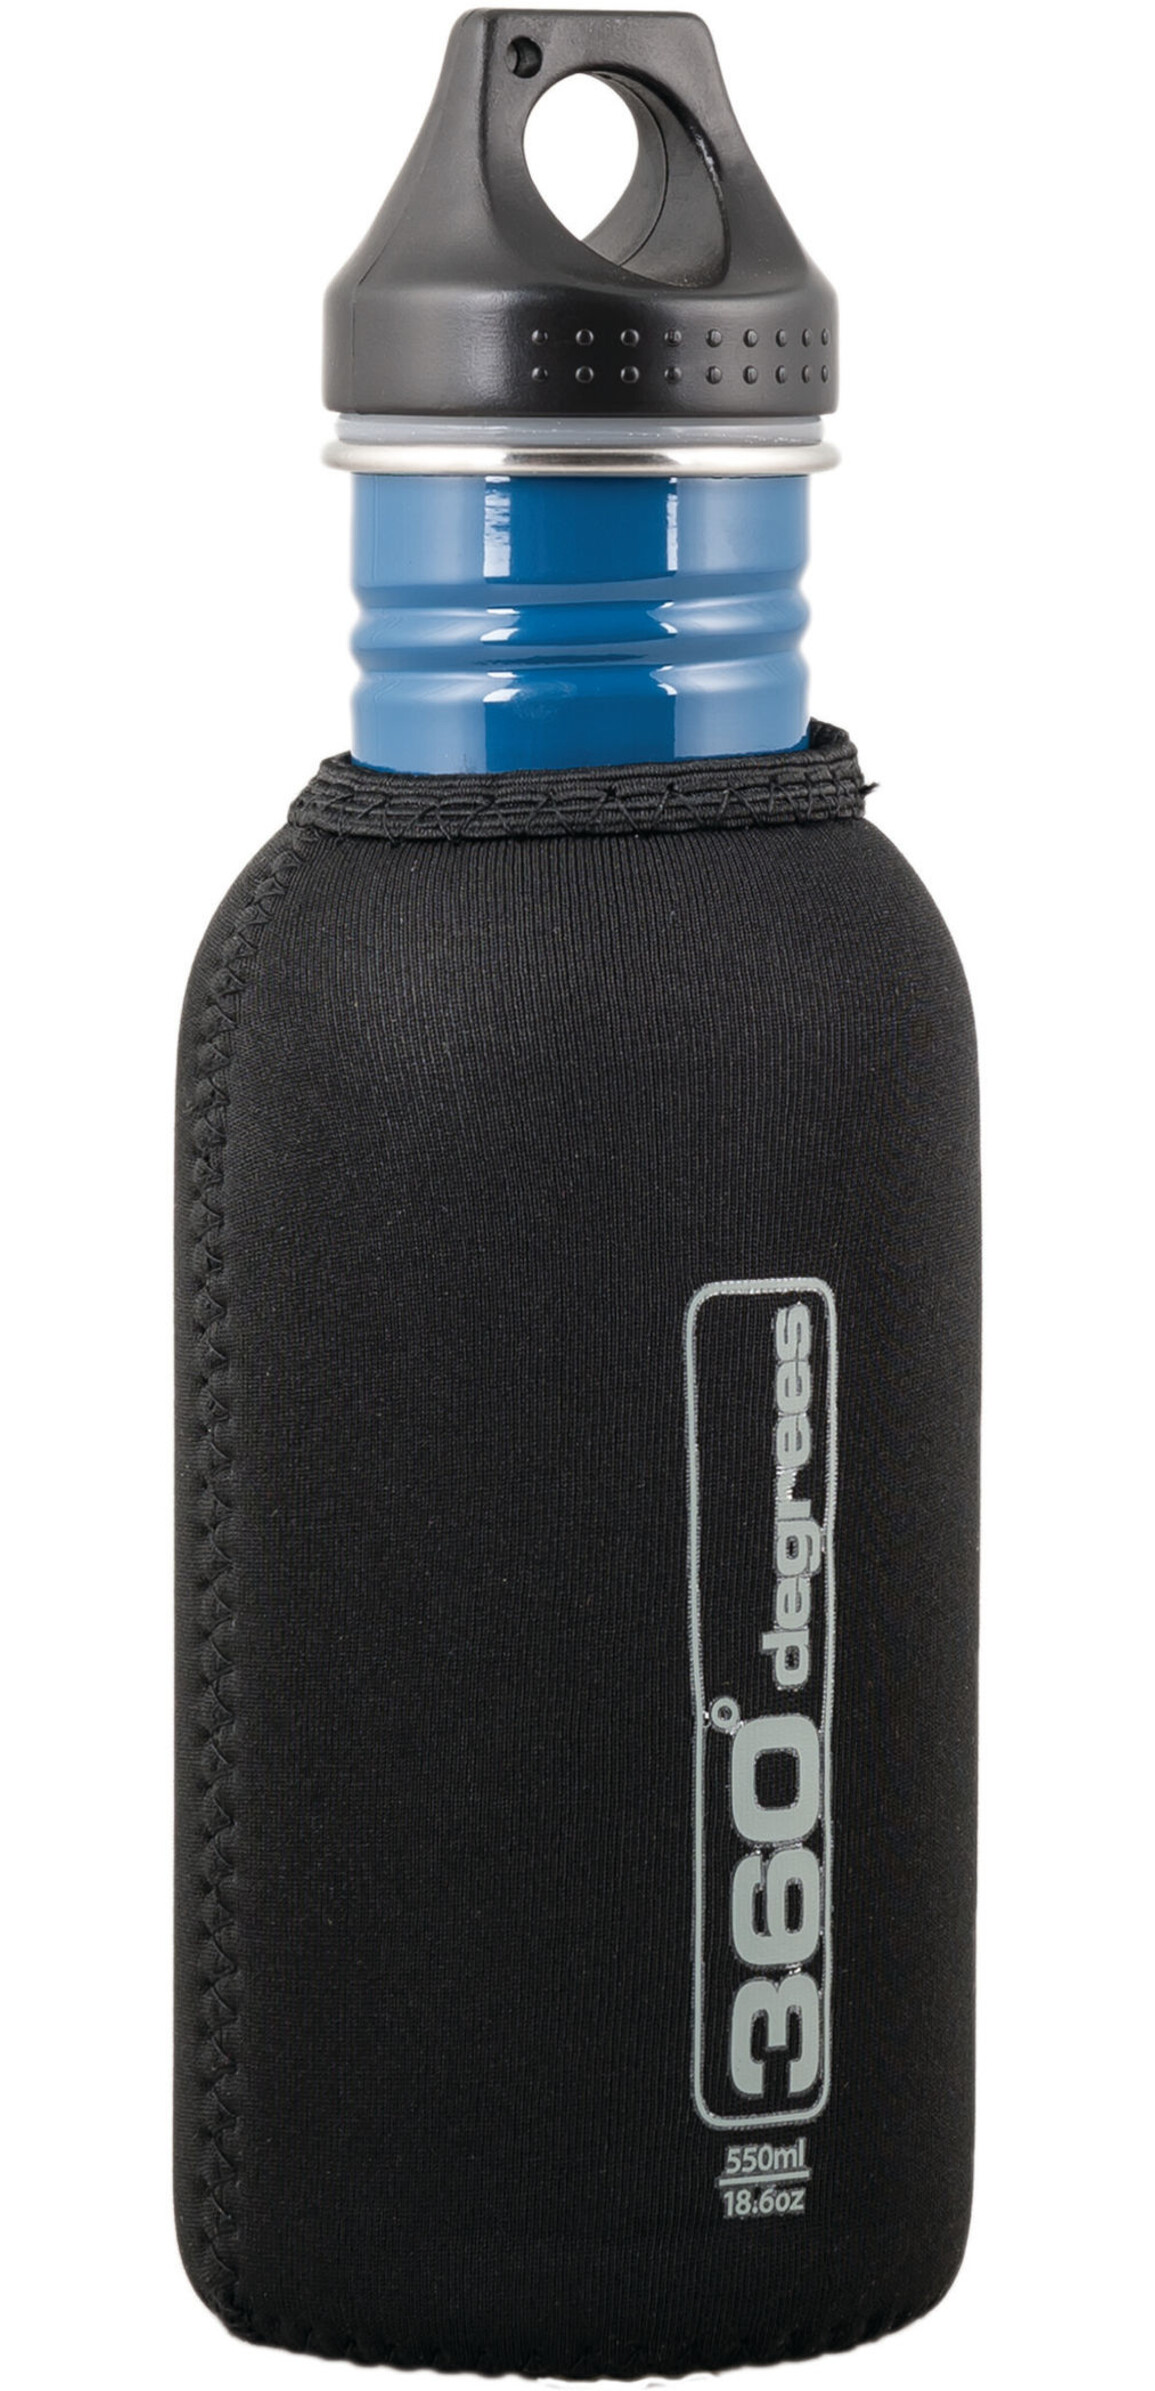 360 degrees stainless drink bottle neoprene pouch 550ml. Black Bedroom Furniture Sets. Home Design Ideas